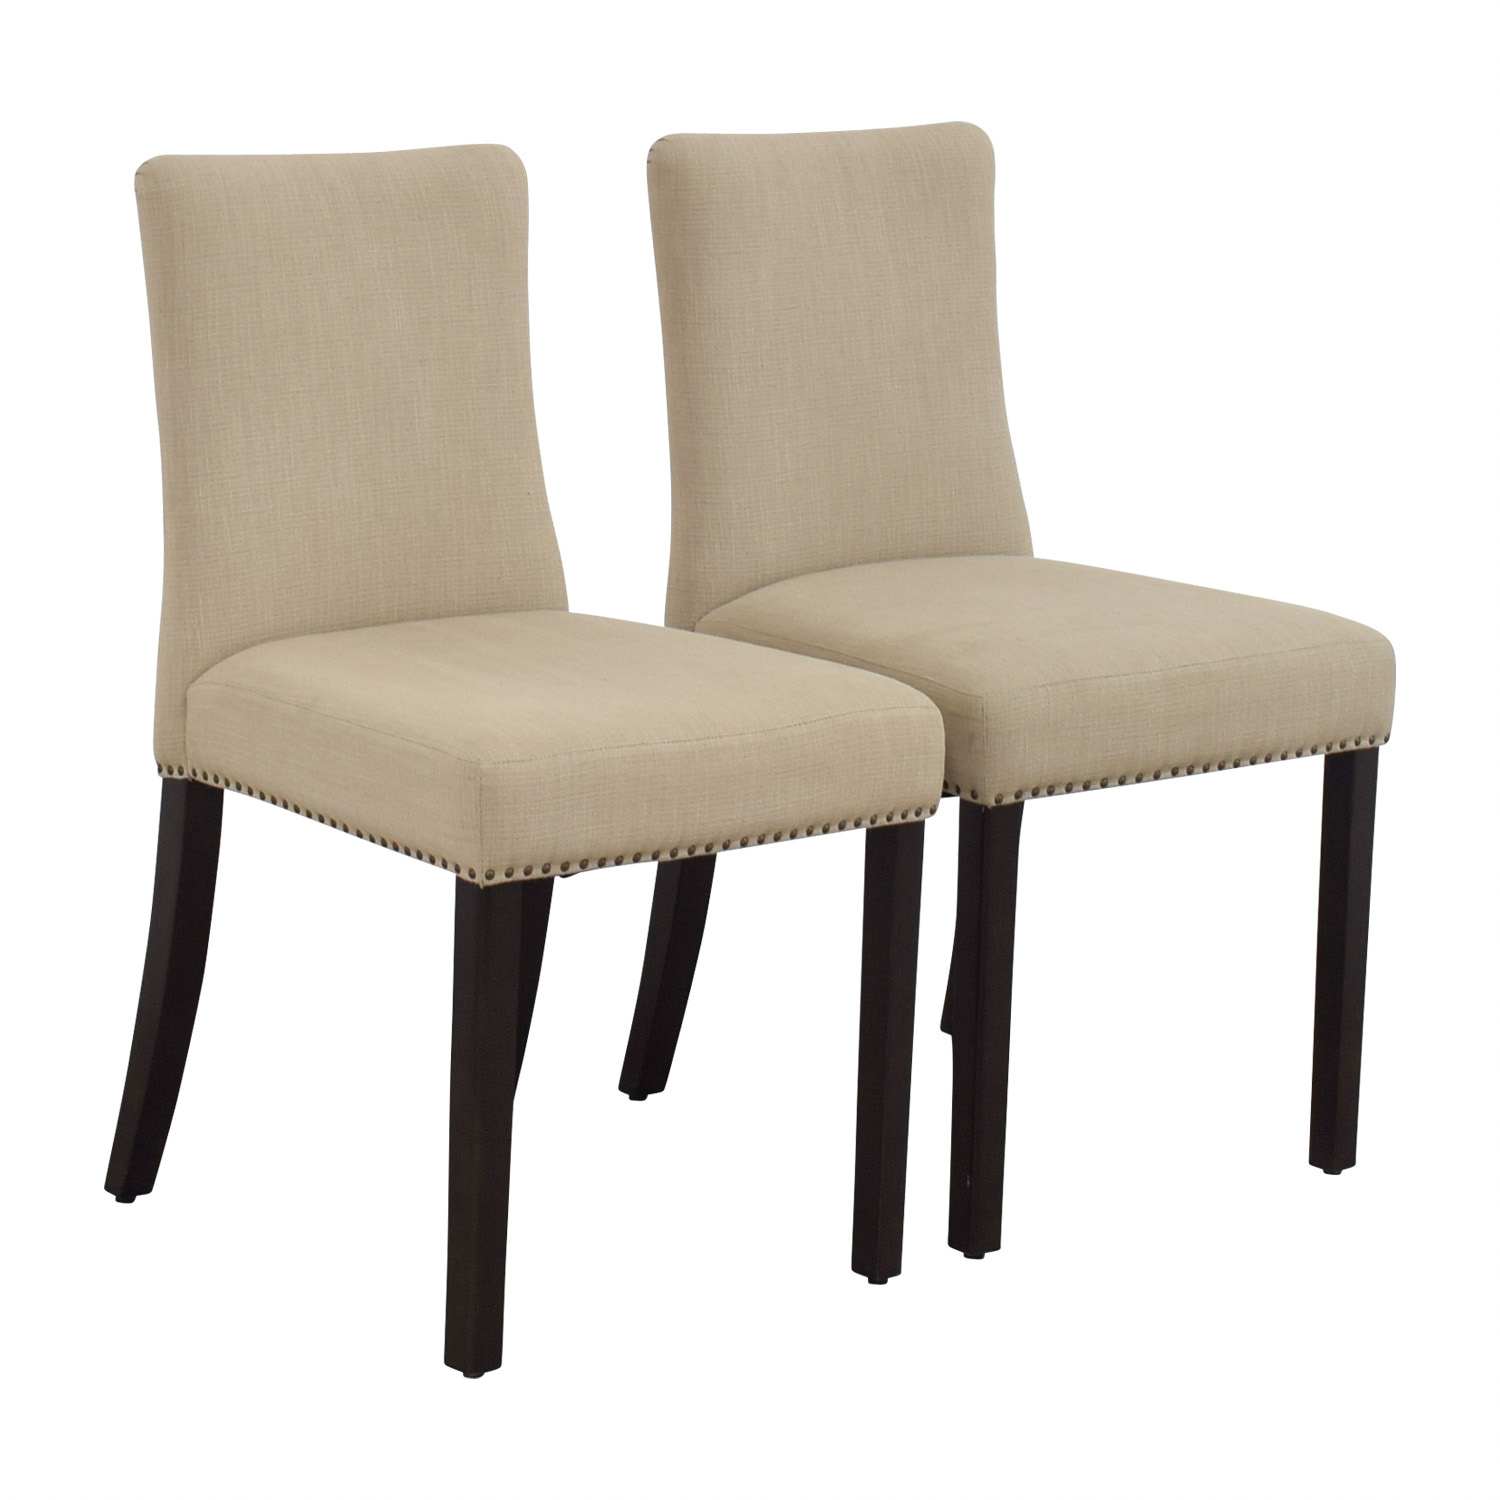 buy West Elm Tan Fabric Nailhead Side Chairs West Elm Chairs